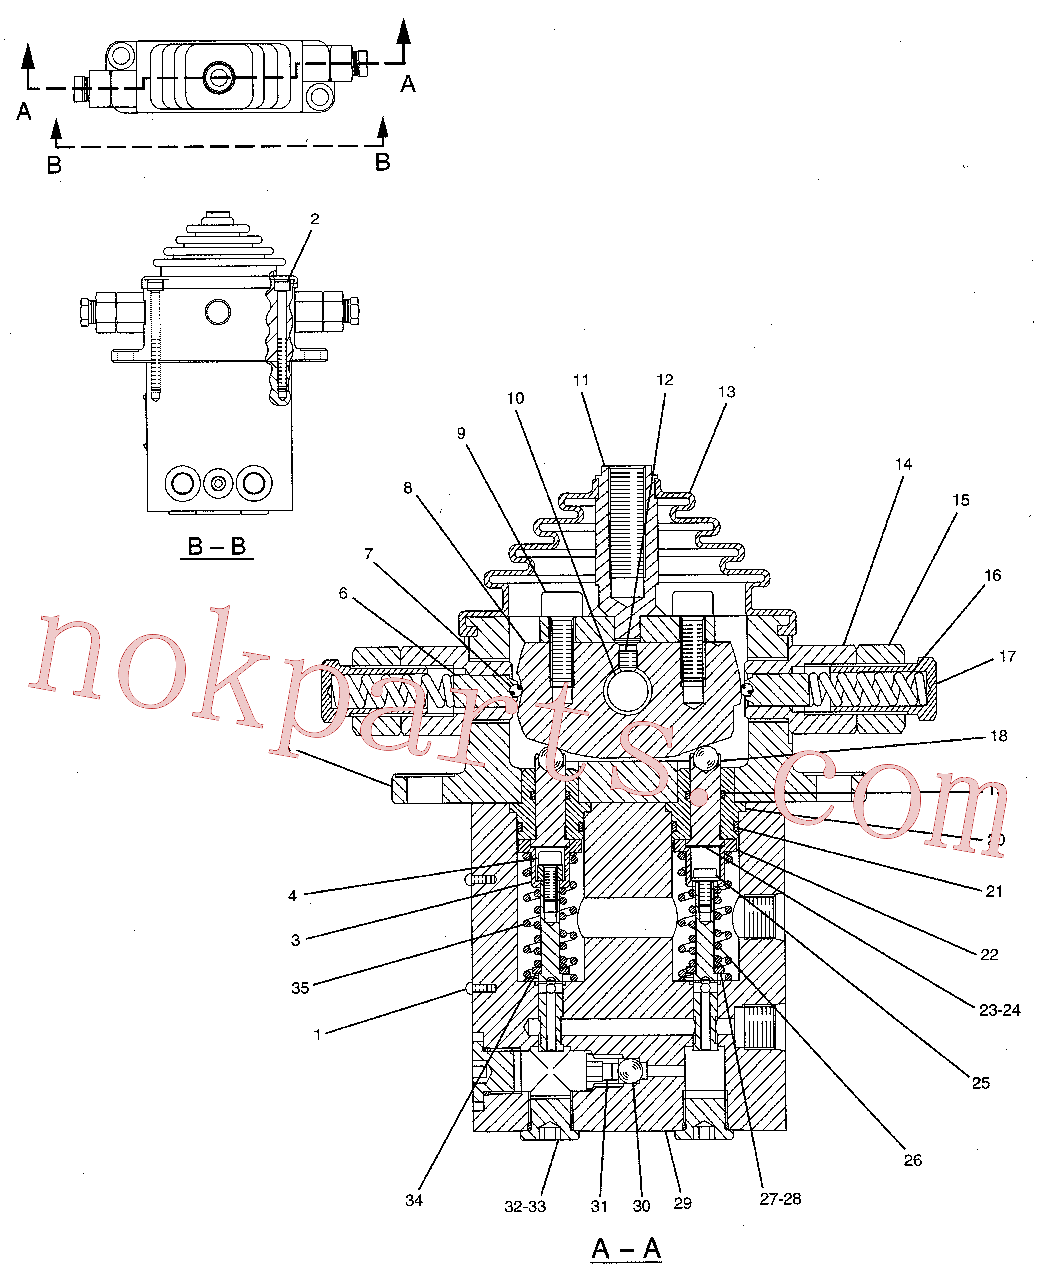 CAT 198-8176 for 321D LCR Excavator(EXC) hydraulic system 190-7695 Assembly